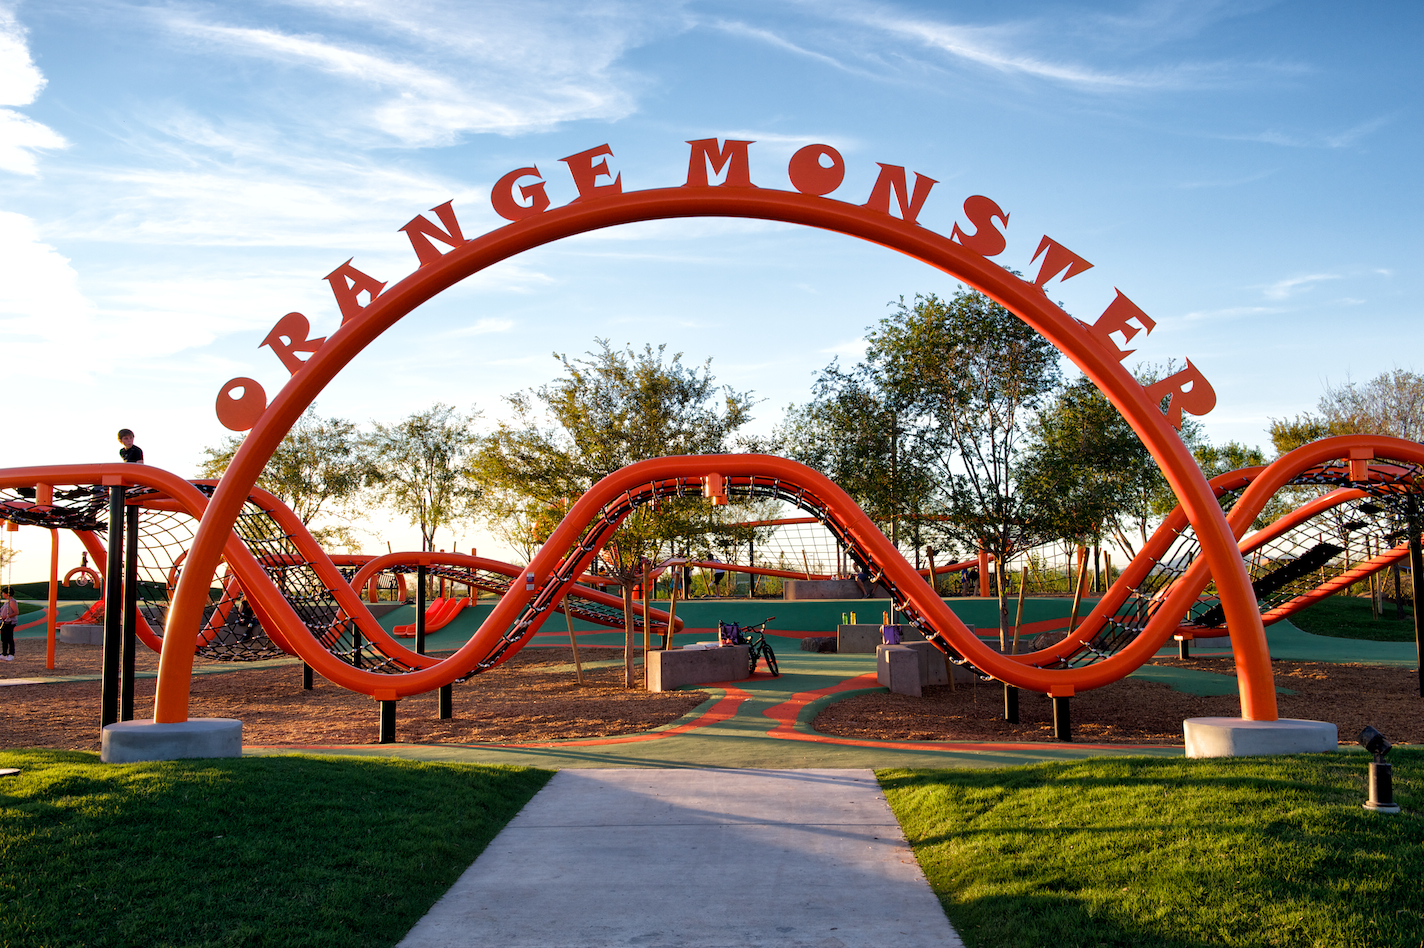 East Orange Focus >> Orange Monster opens to the public at The Eastmark Great Park